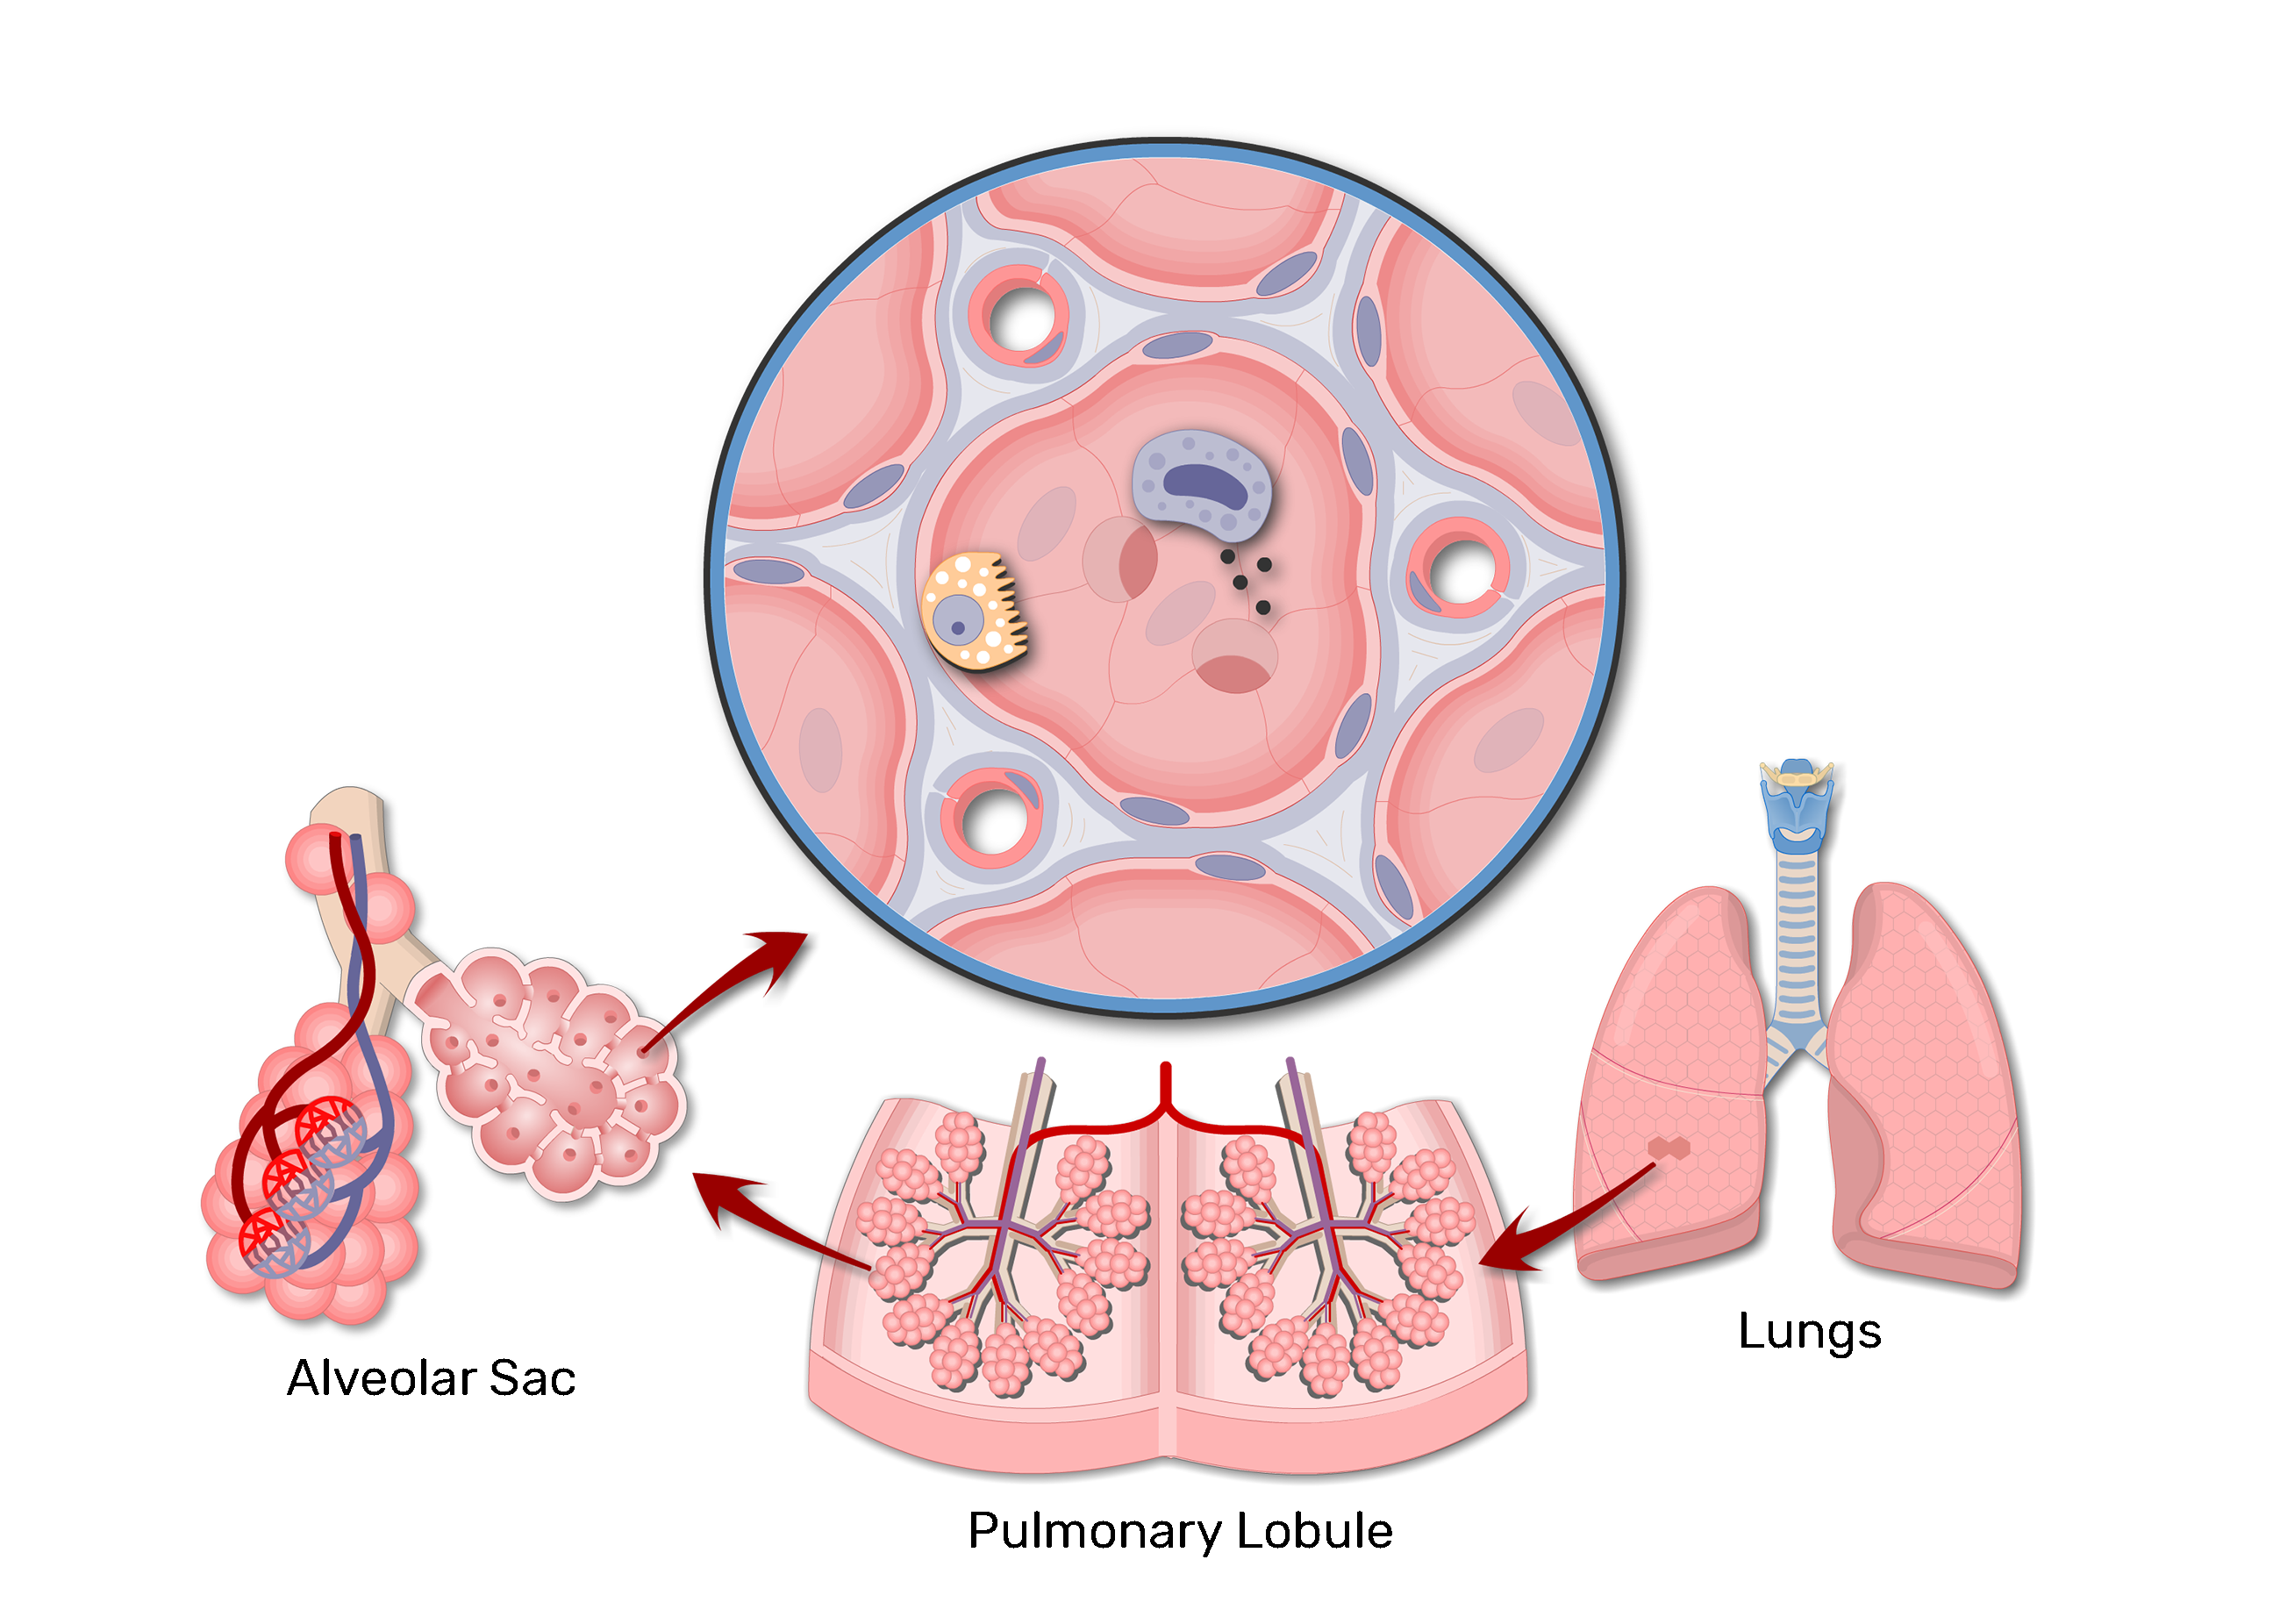 Lung Alveolus Structure - Lung Alveoli Anatomy